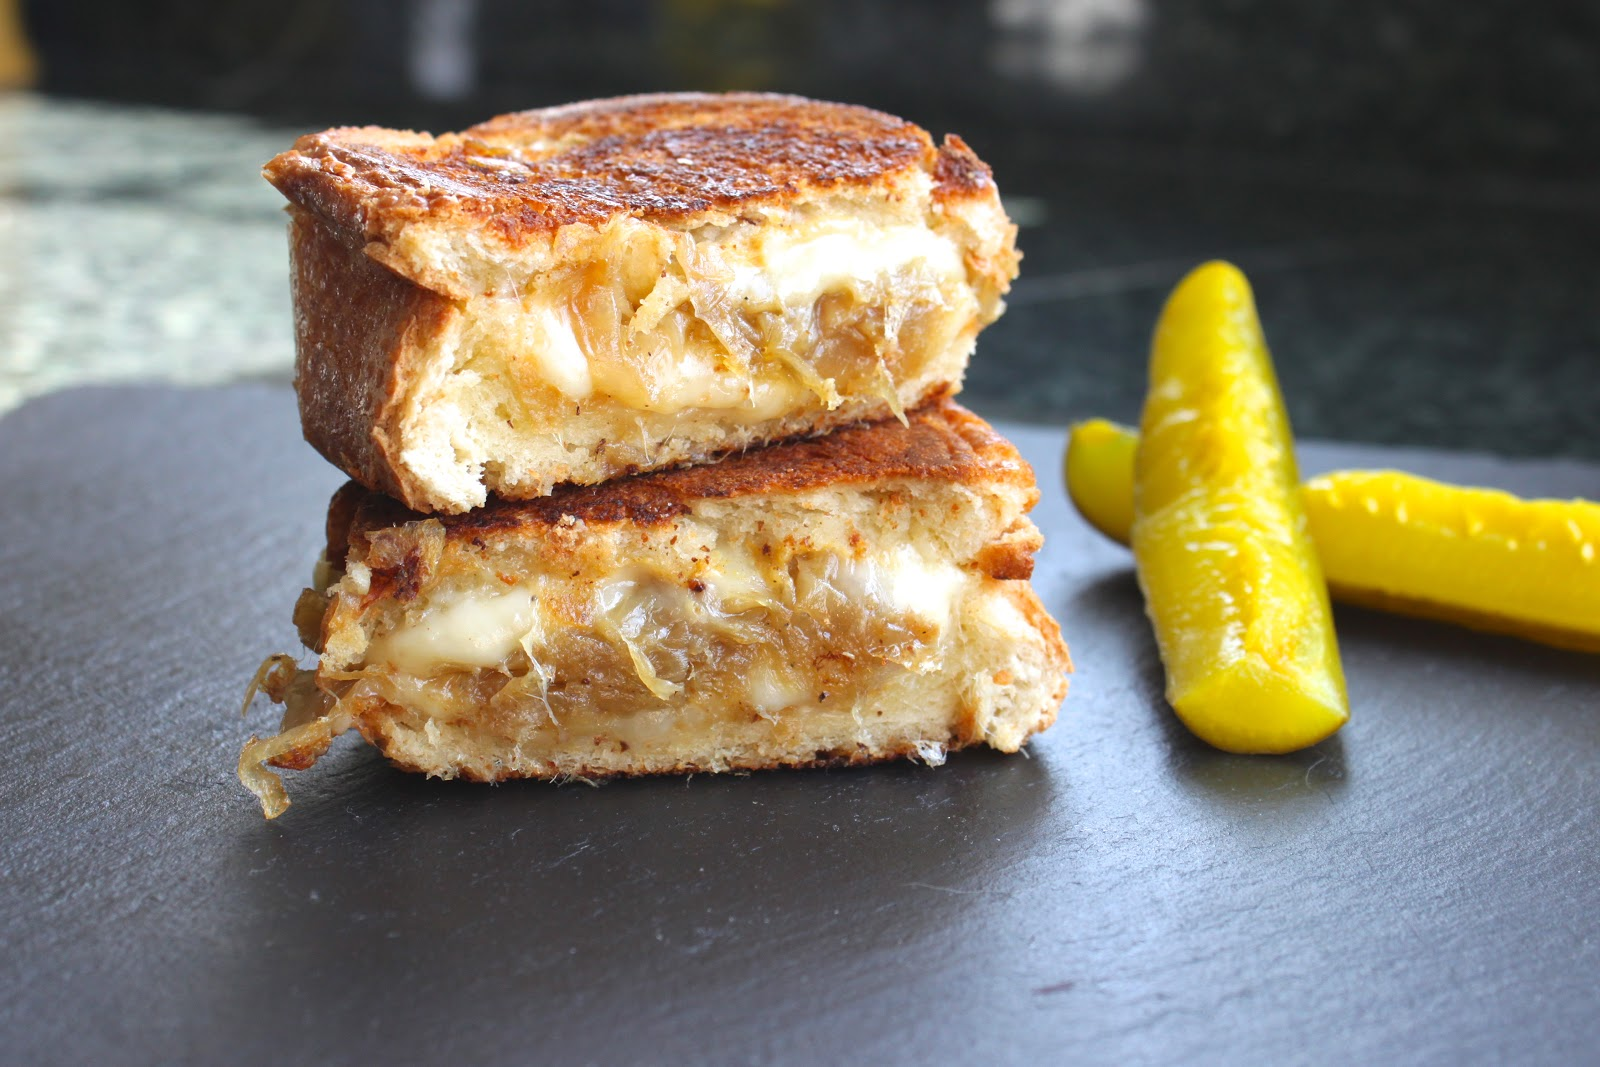 ... Chew on This | Grilled Gruyere Cheese and Caramelized Onion Sandwiches